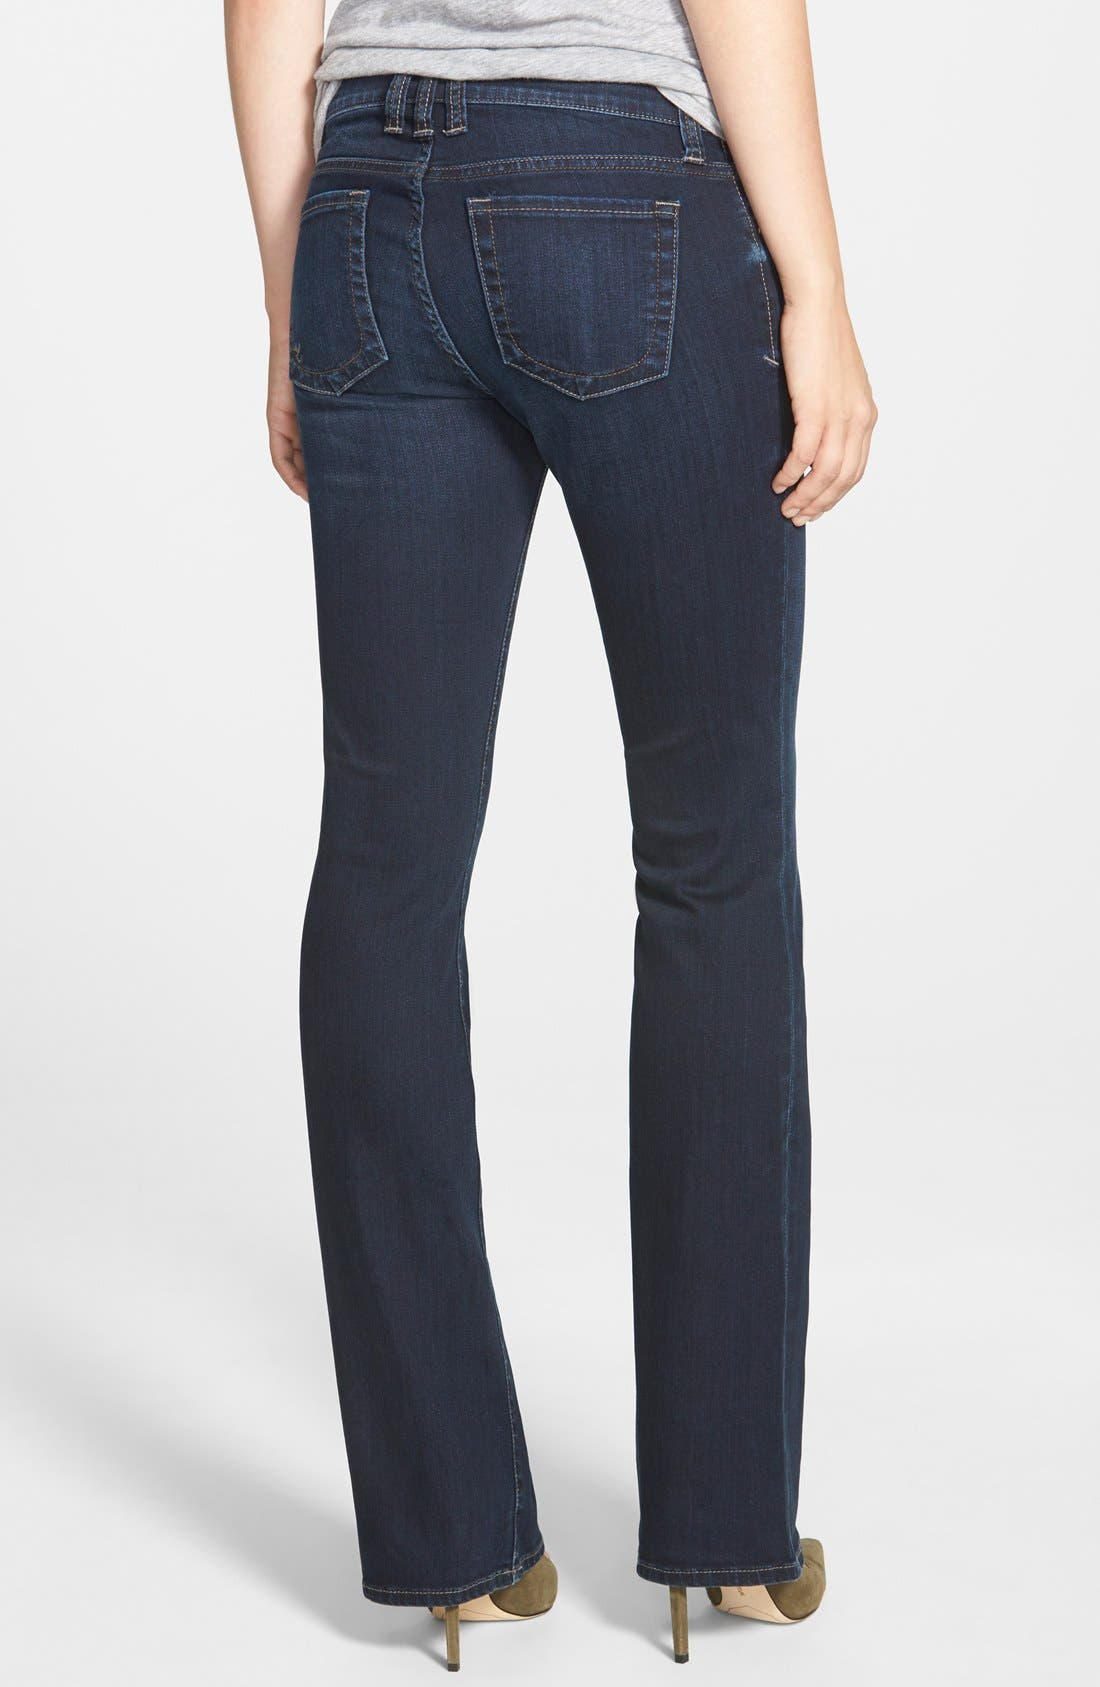 'Natalie' Stretch Bootcut Jeans,                             Alternate thumbnail 3, color,                             400